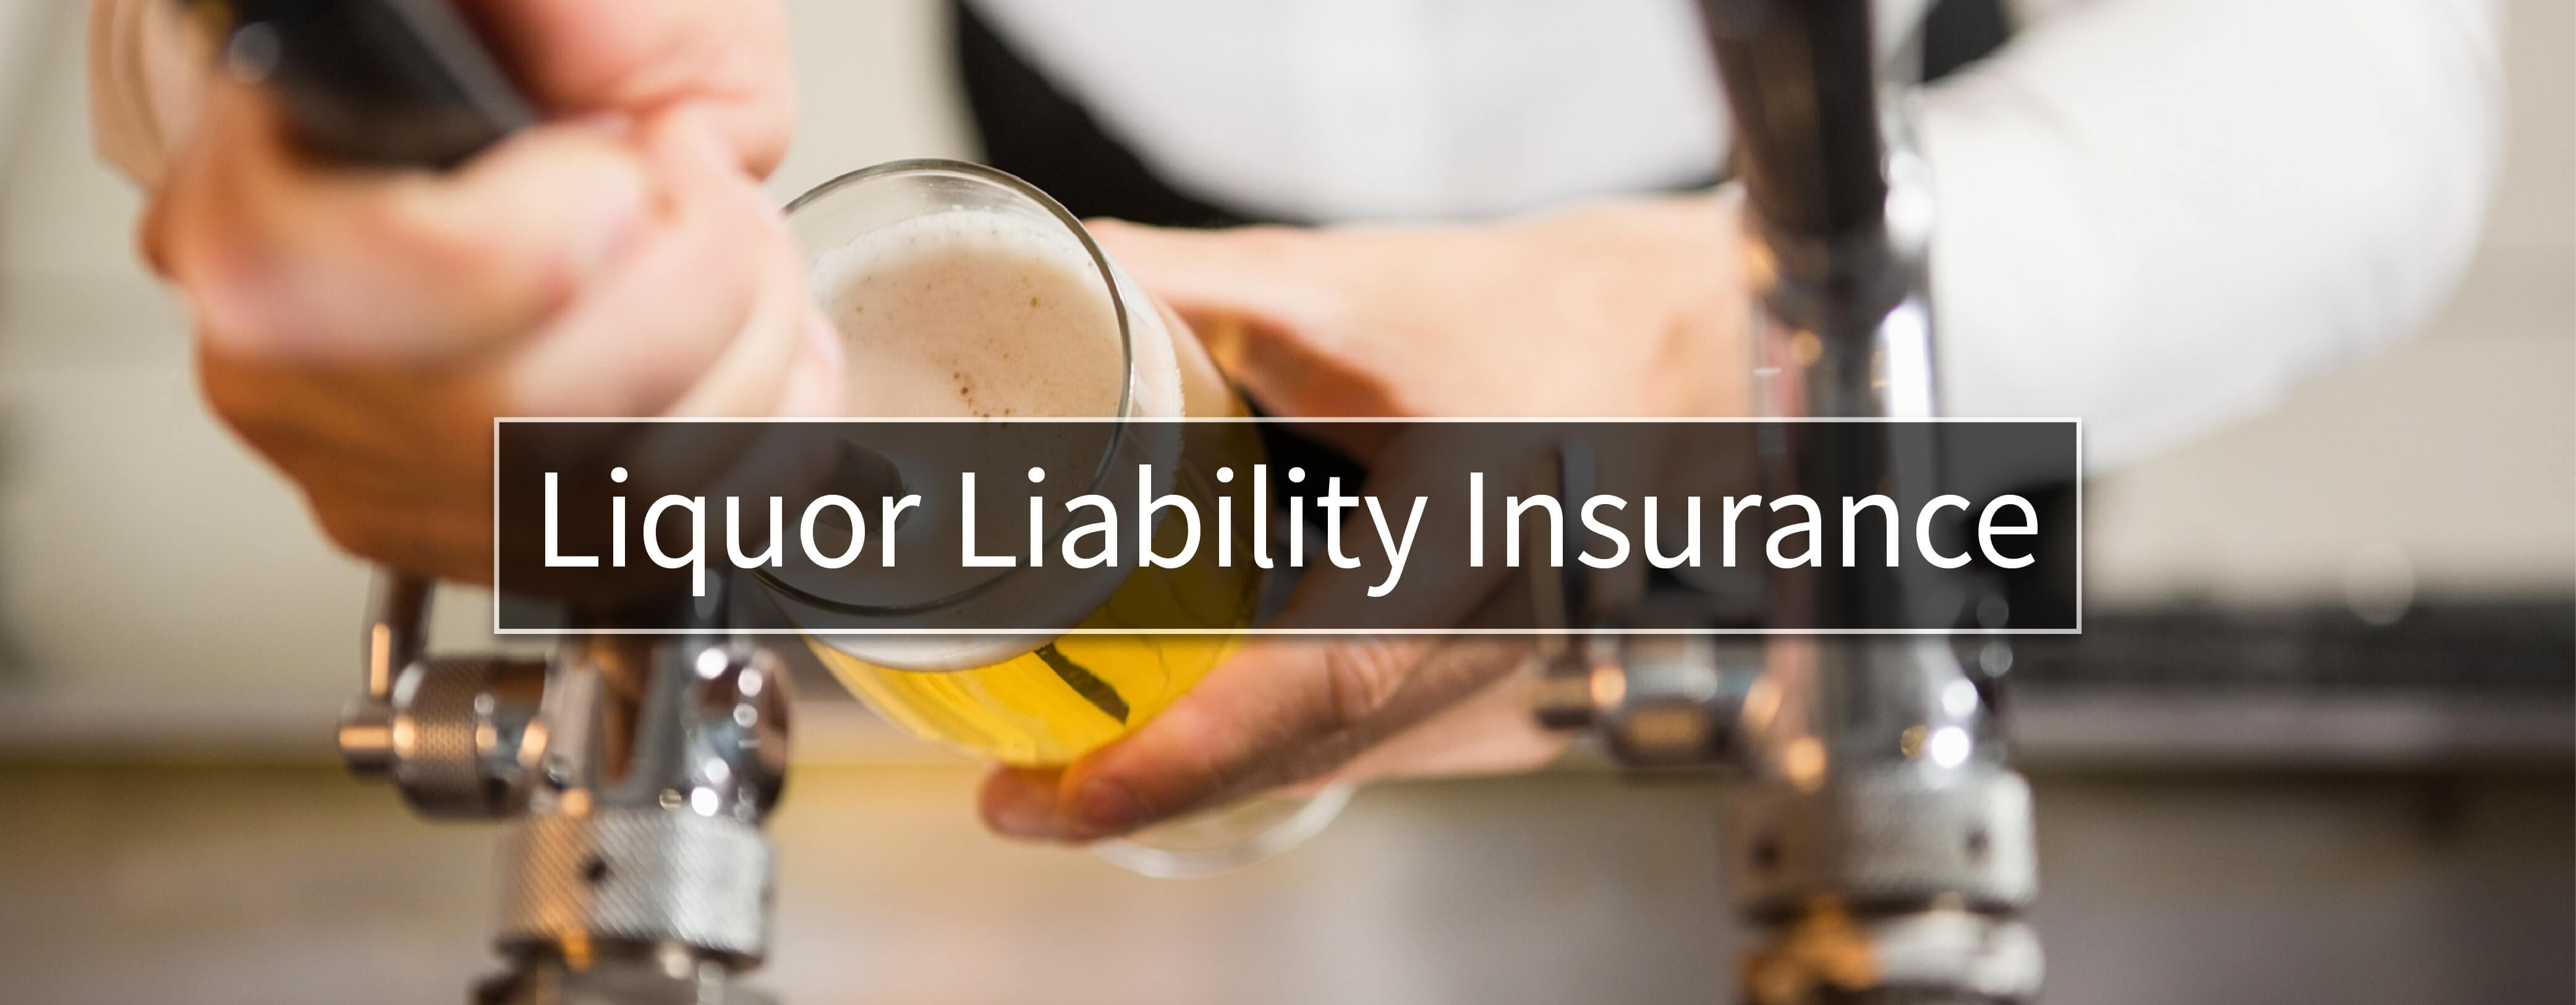 Liquor Liability Insurance Massachusetts